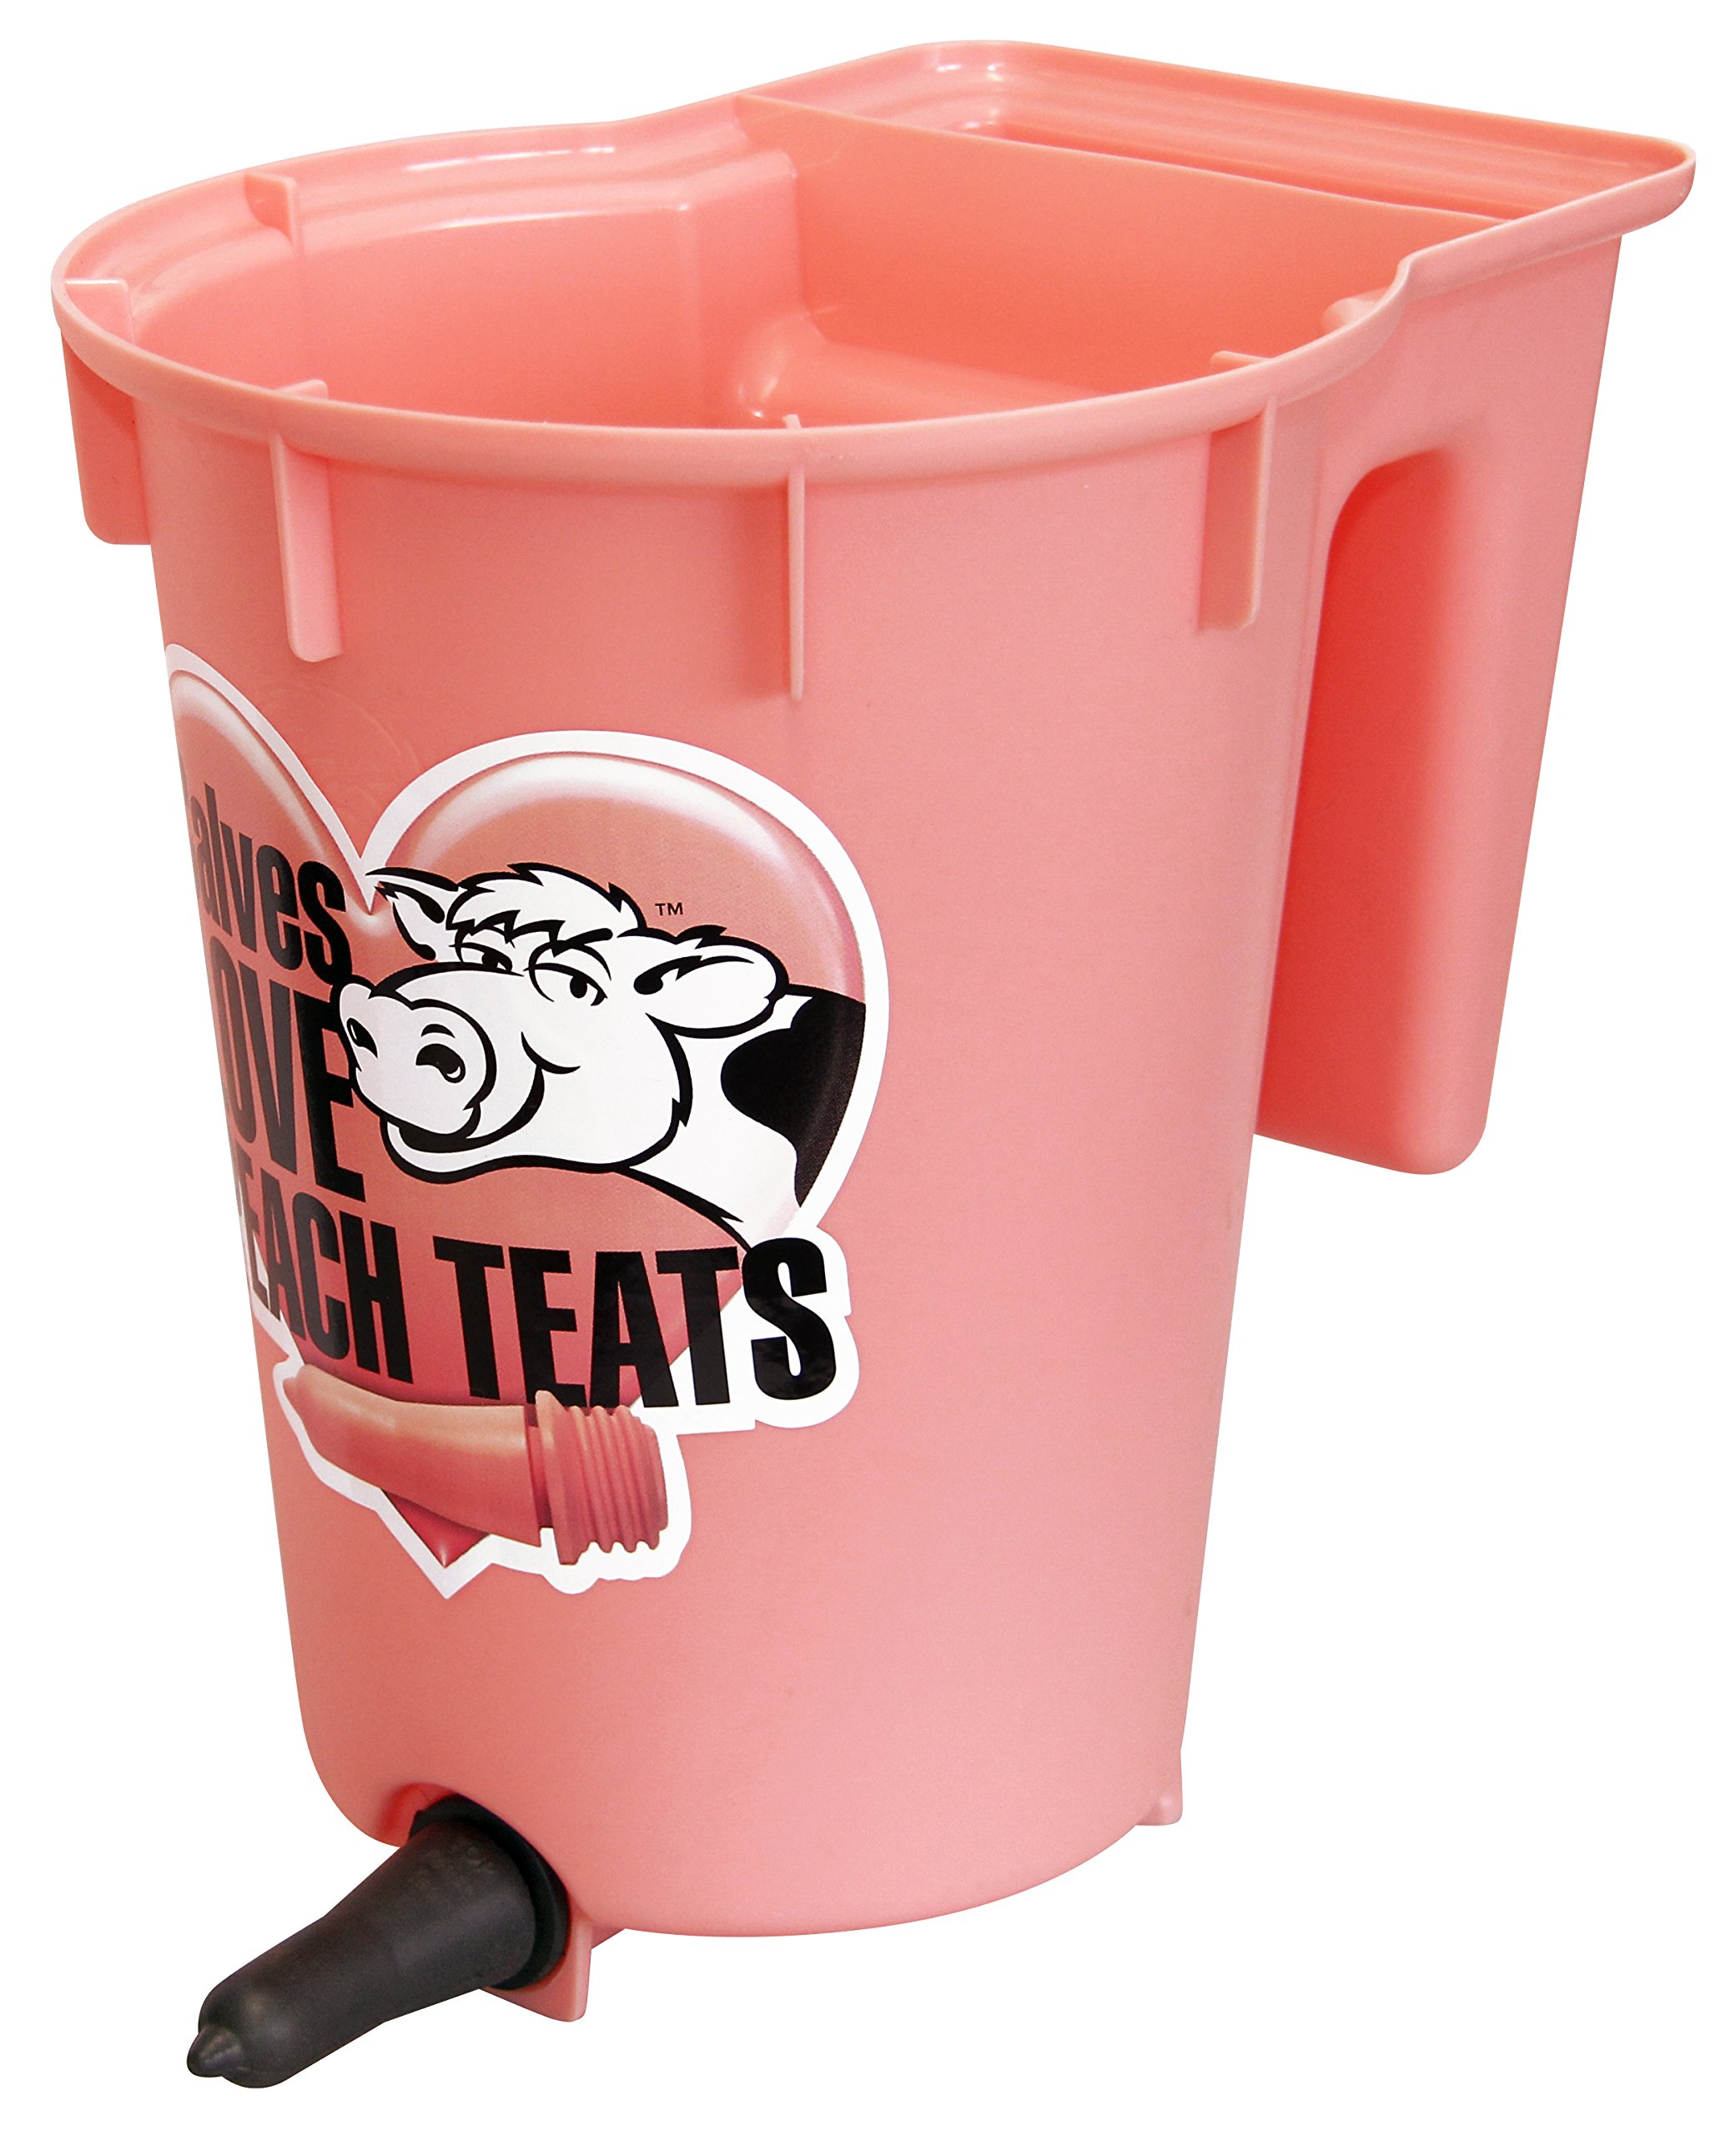 Peach Teats Single Feeder Bucket, Pink